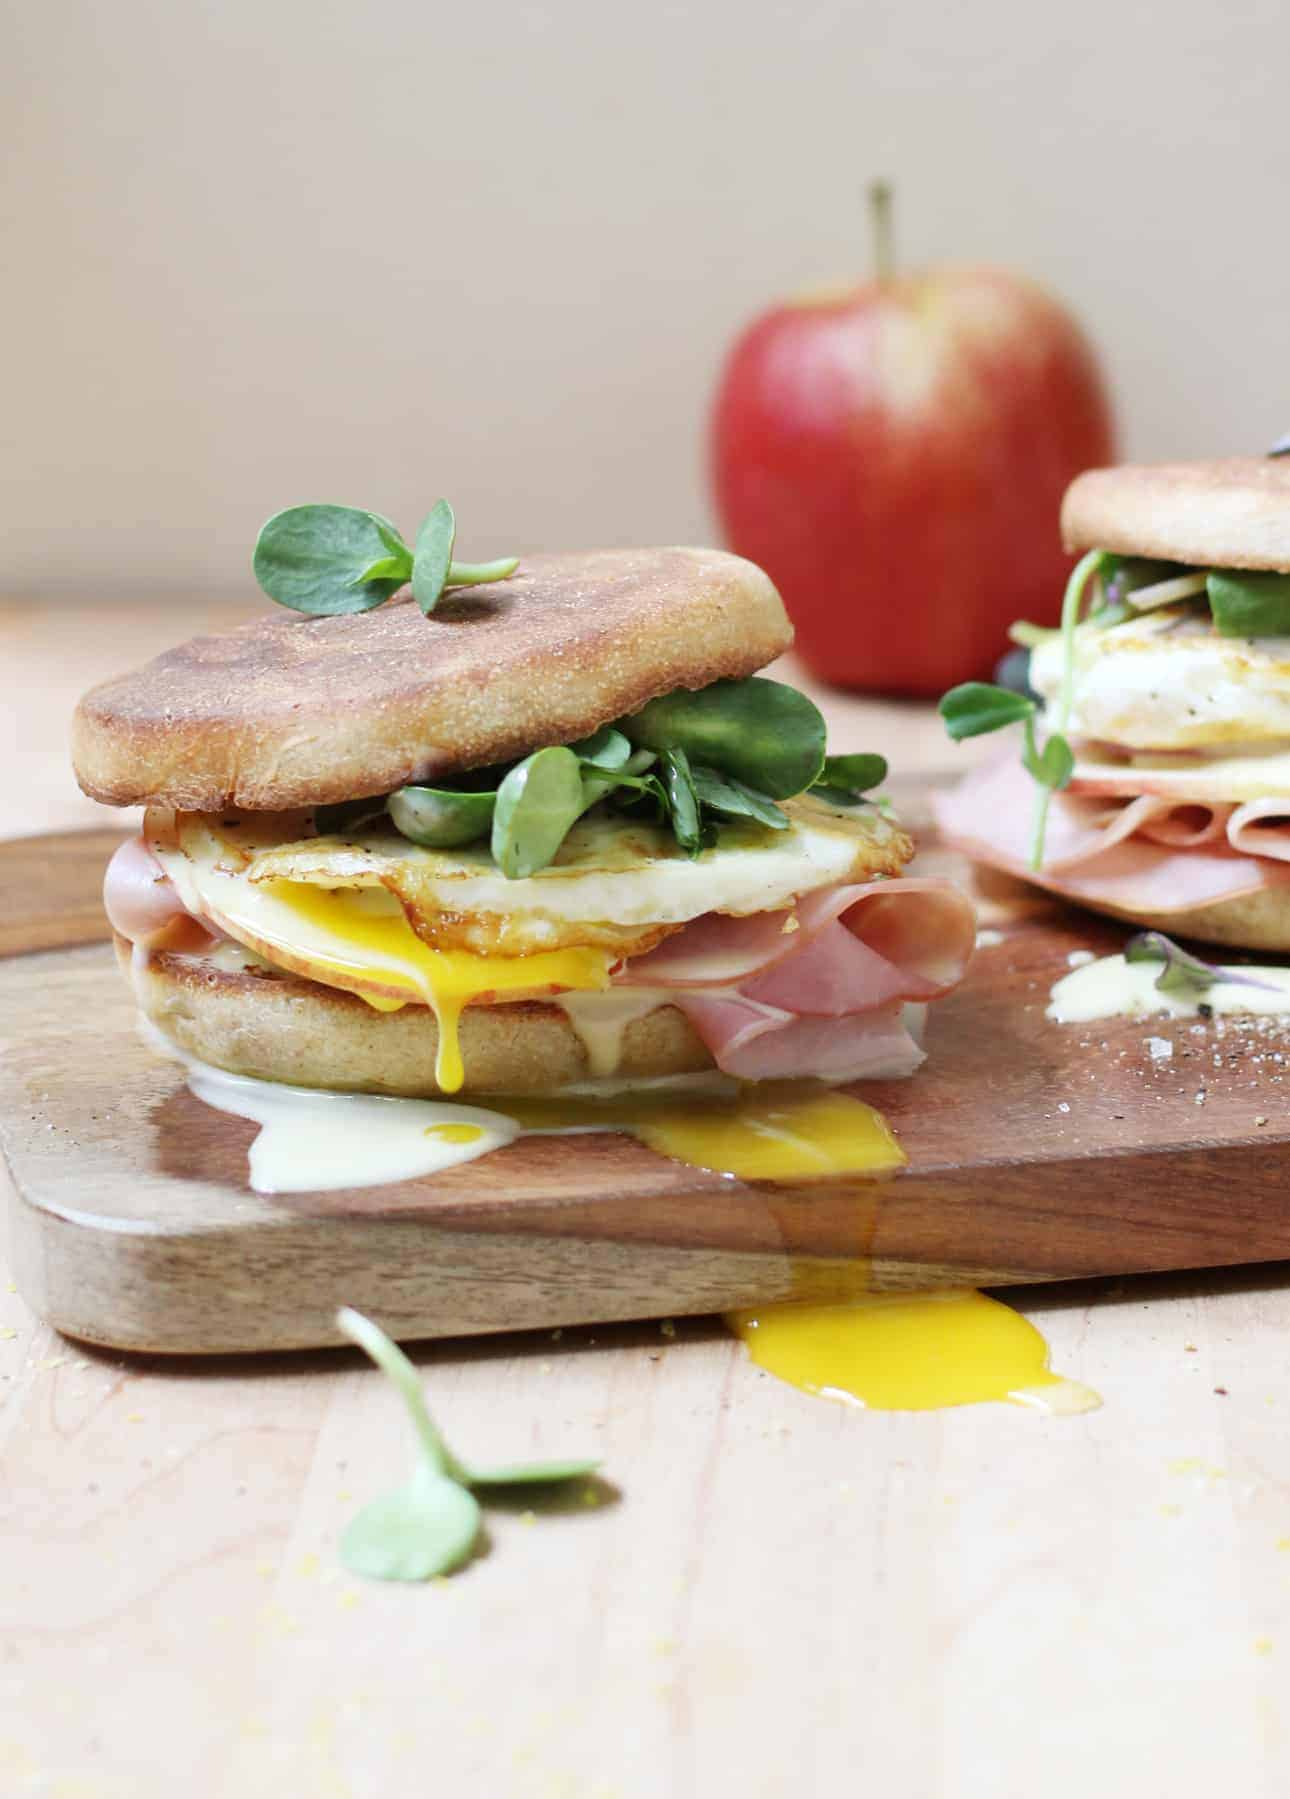 Runny Egg, Maple Ham, and Crispy Apple Breakfast Sandwich with Blender Hollandaise Sauce